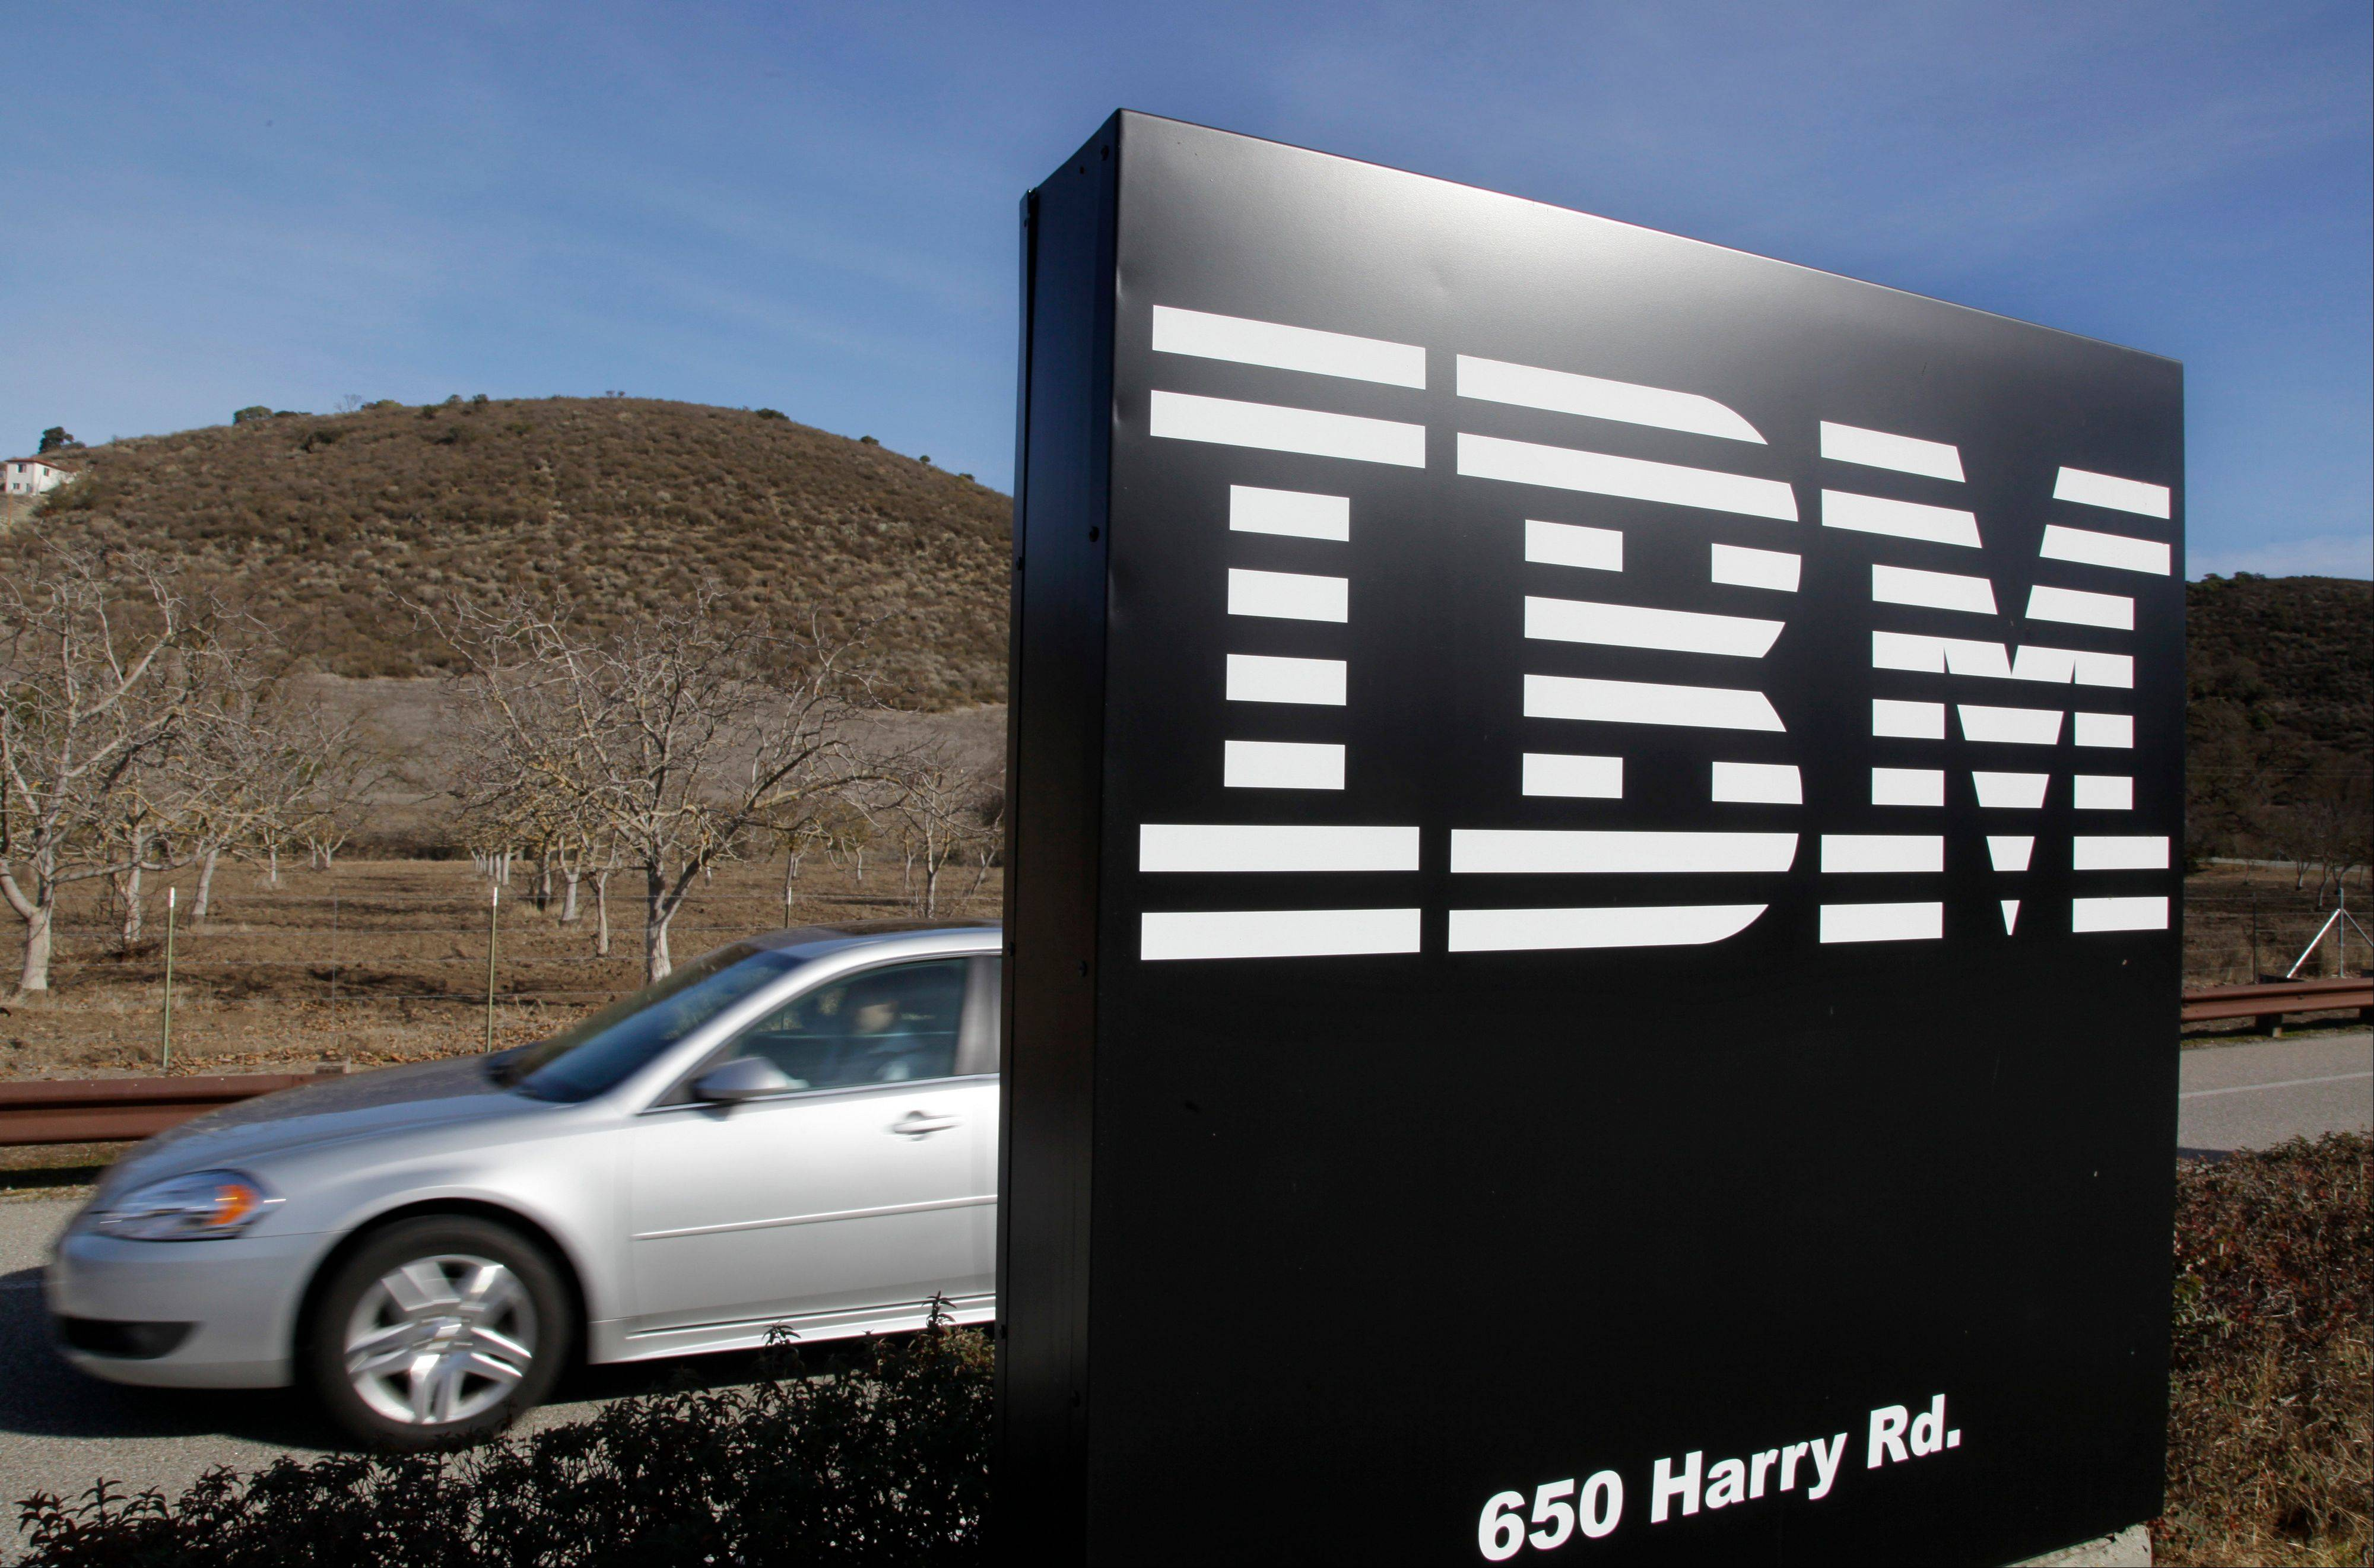 IBM most recently added to its buyback program in April in the amount of $7 billion.